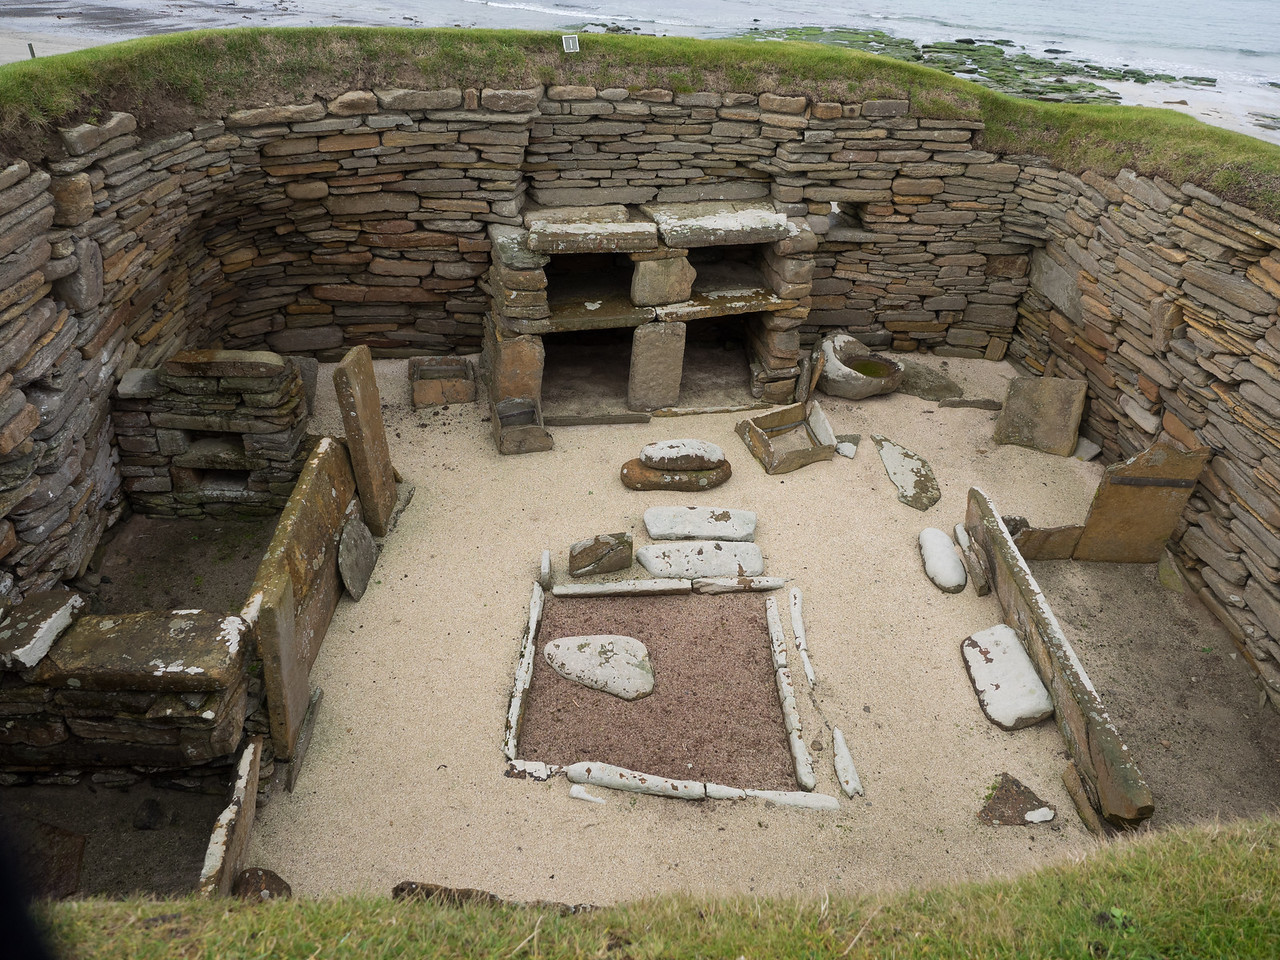 One of the Neolithic houses, complete with Flintstone-esque stone dresser. The stone setting in the middle is a hearth, and the compartments on the left were for  beds.